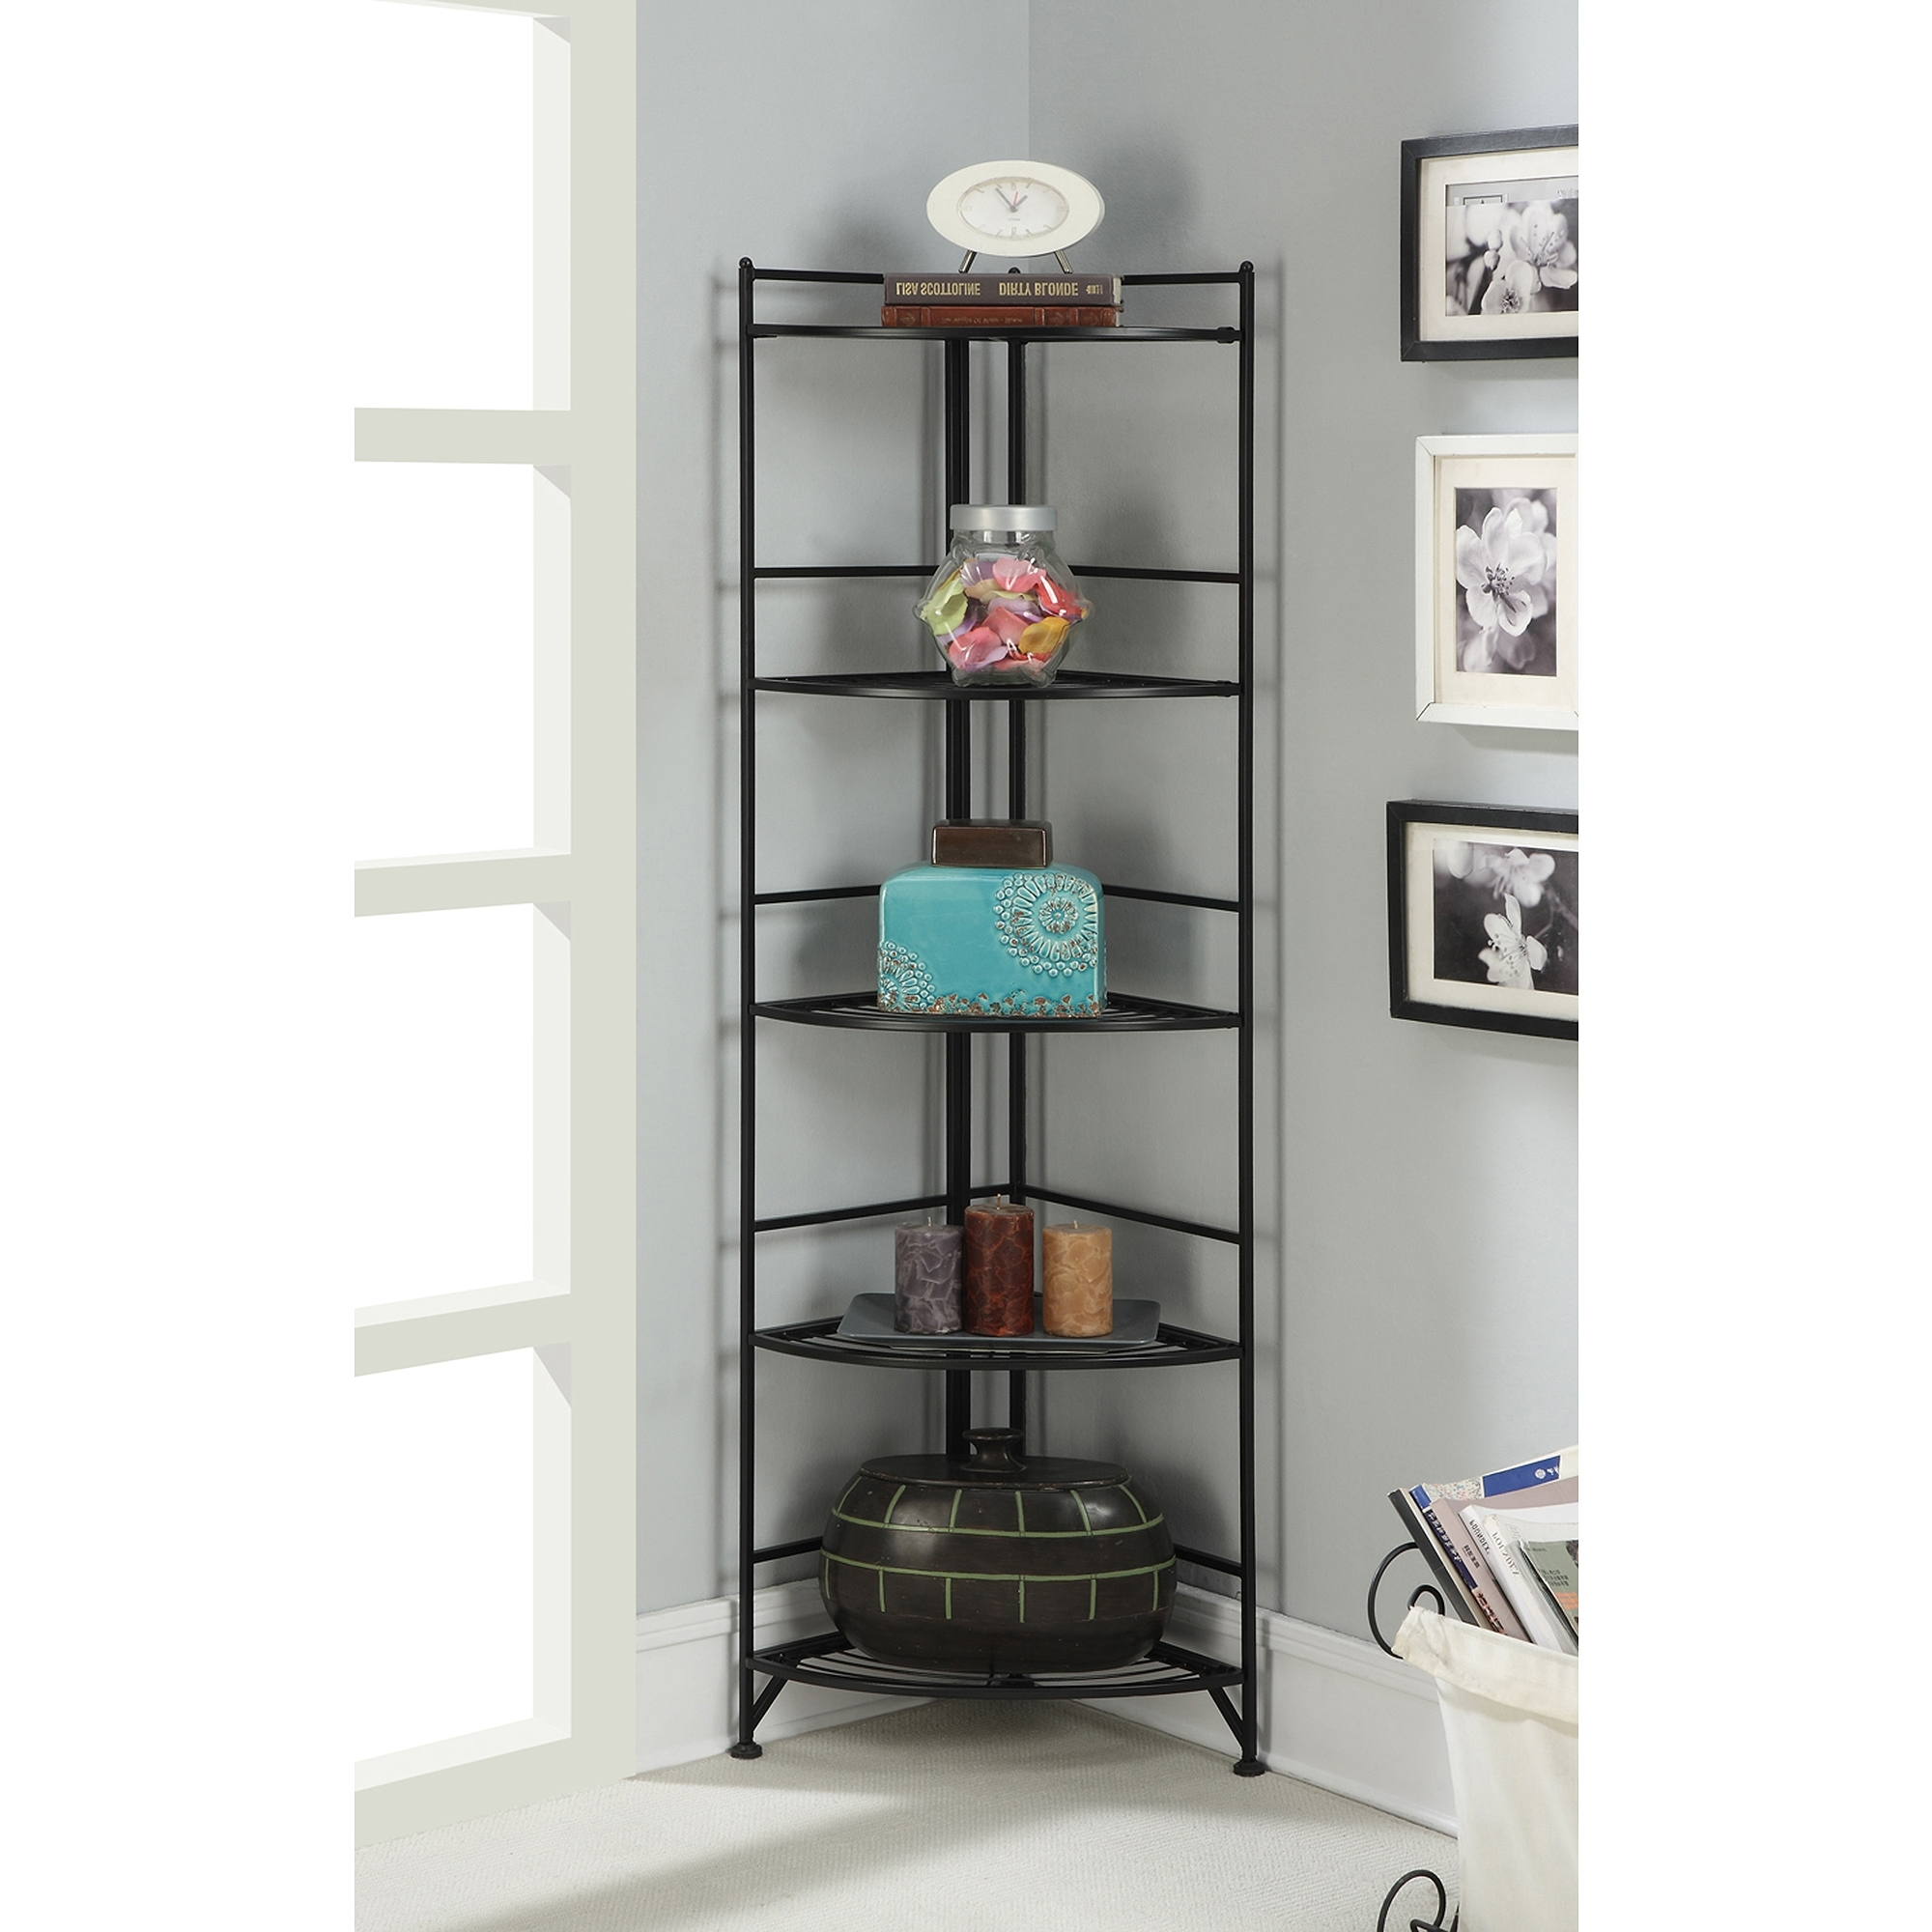 Bookcases – Walmart In 2018 3 Shelf Bookcases Walmart (View 3 of 15)